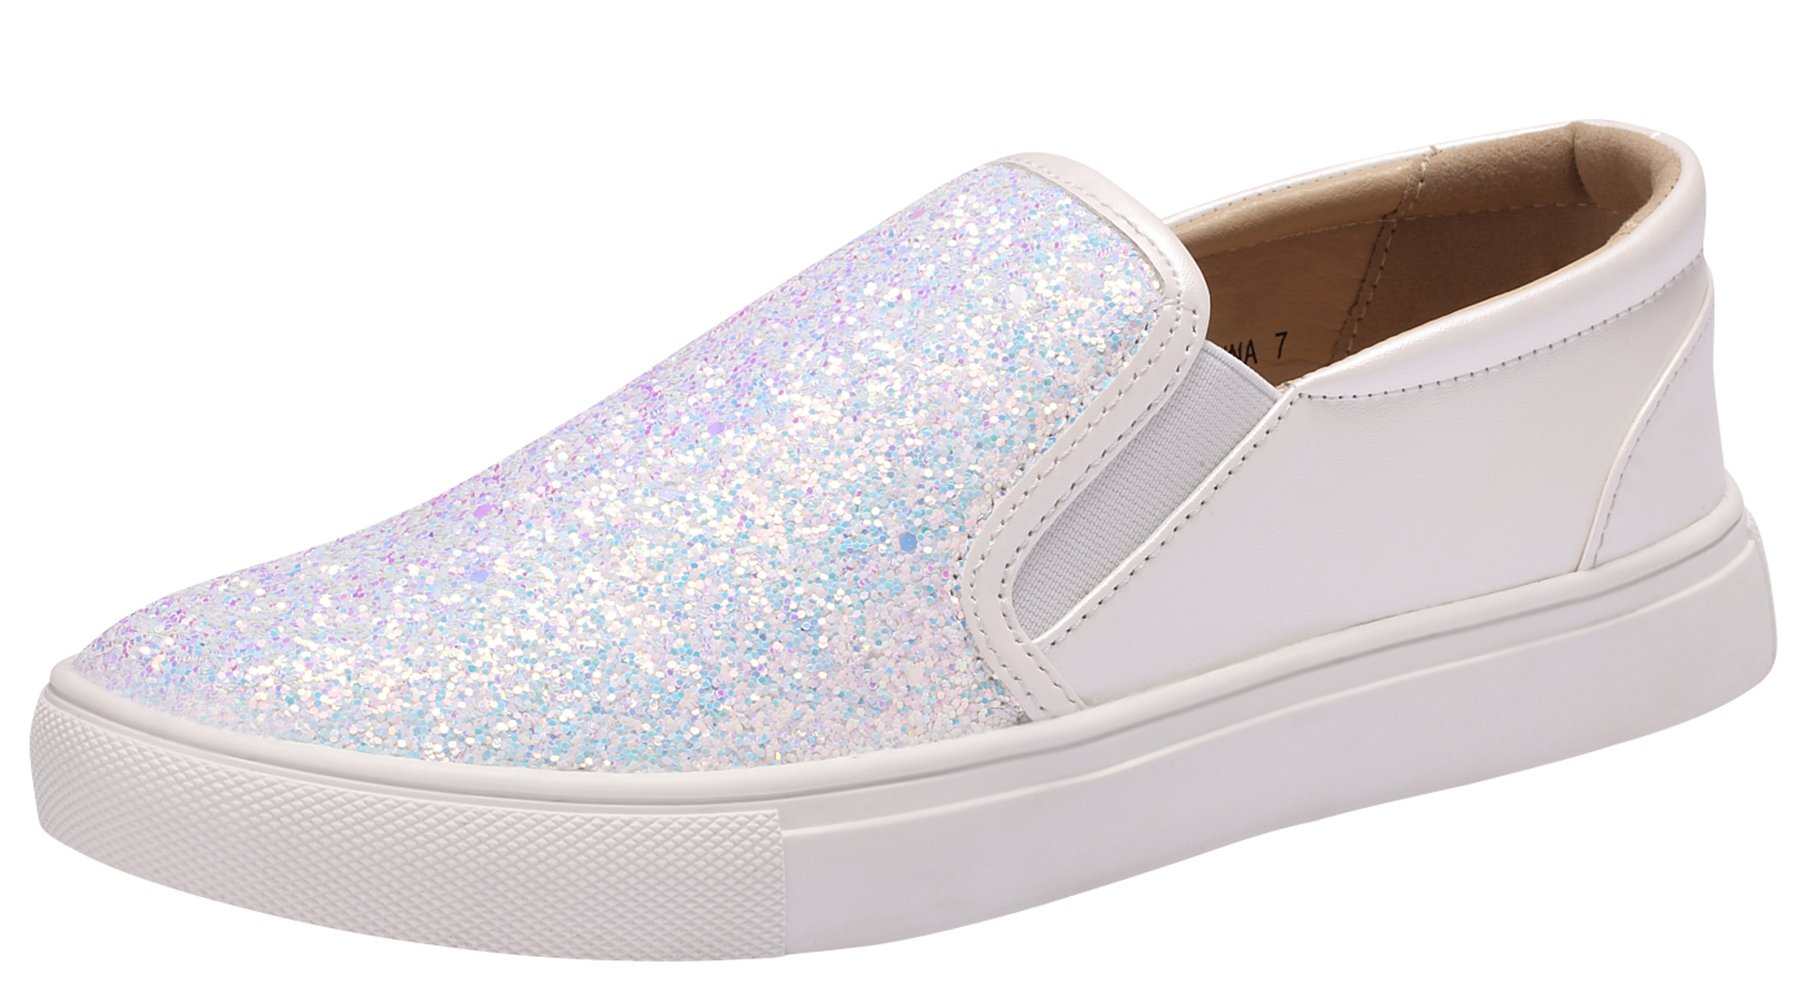 Sofree Women's Fashion Slip On Glitter Comfortable Sneakers Flat Shoes (11, White)